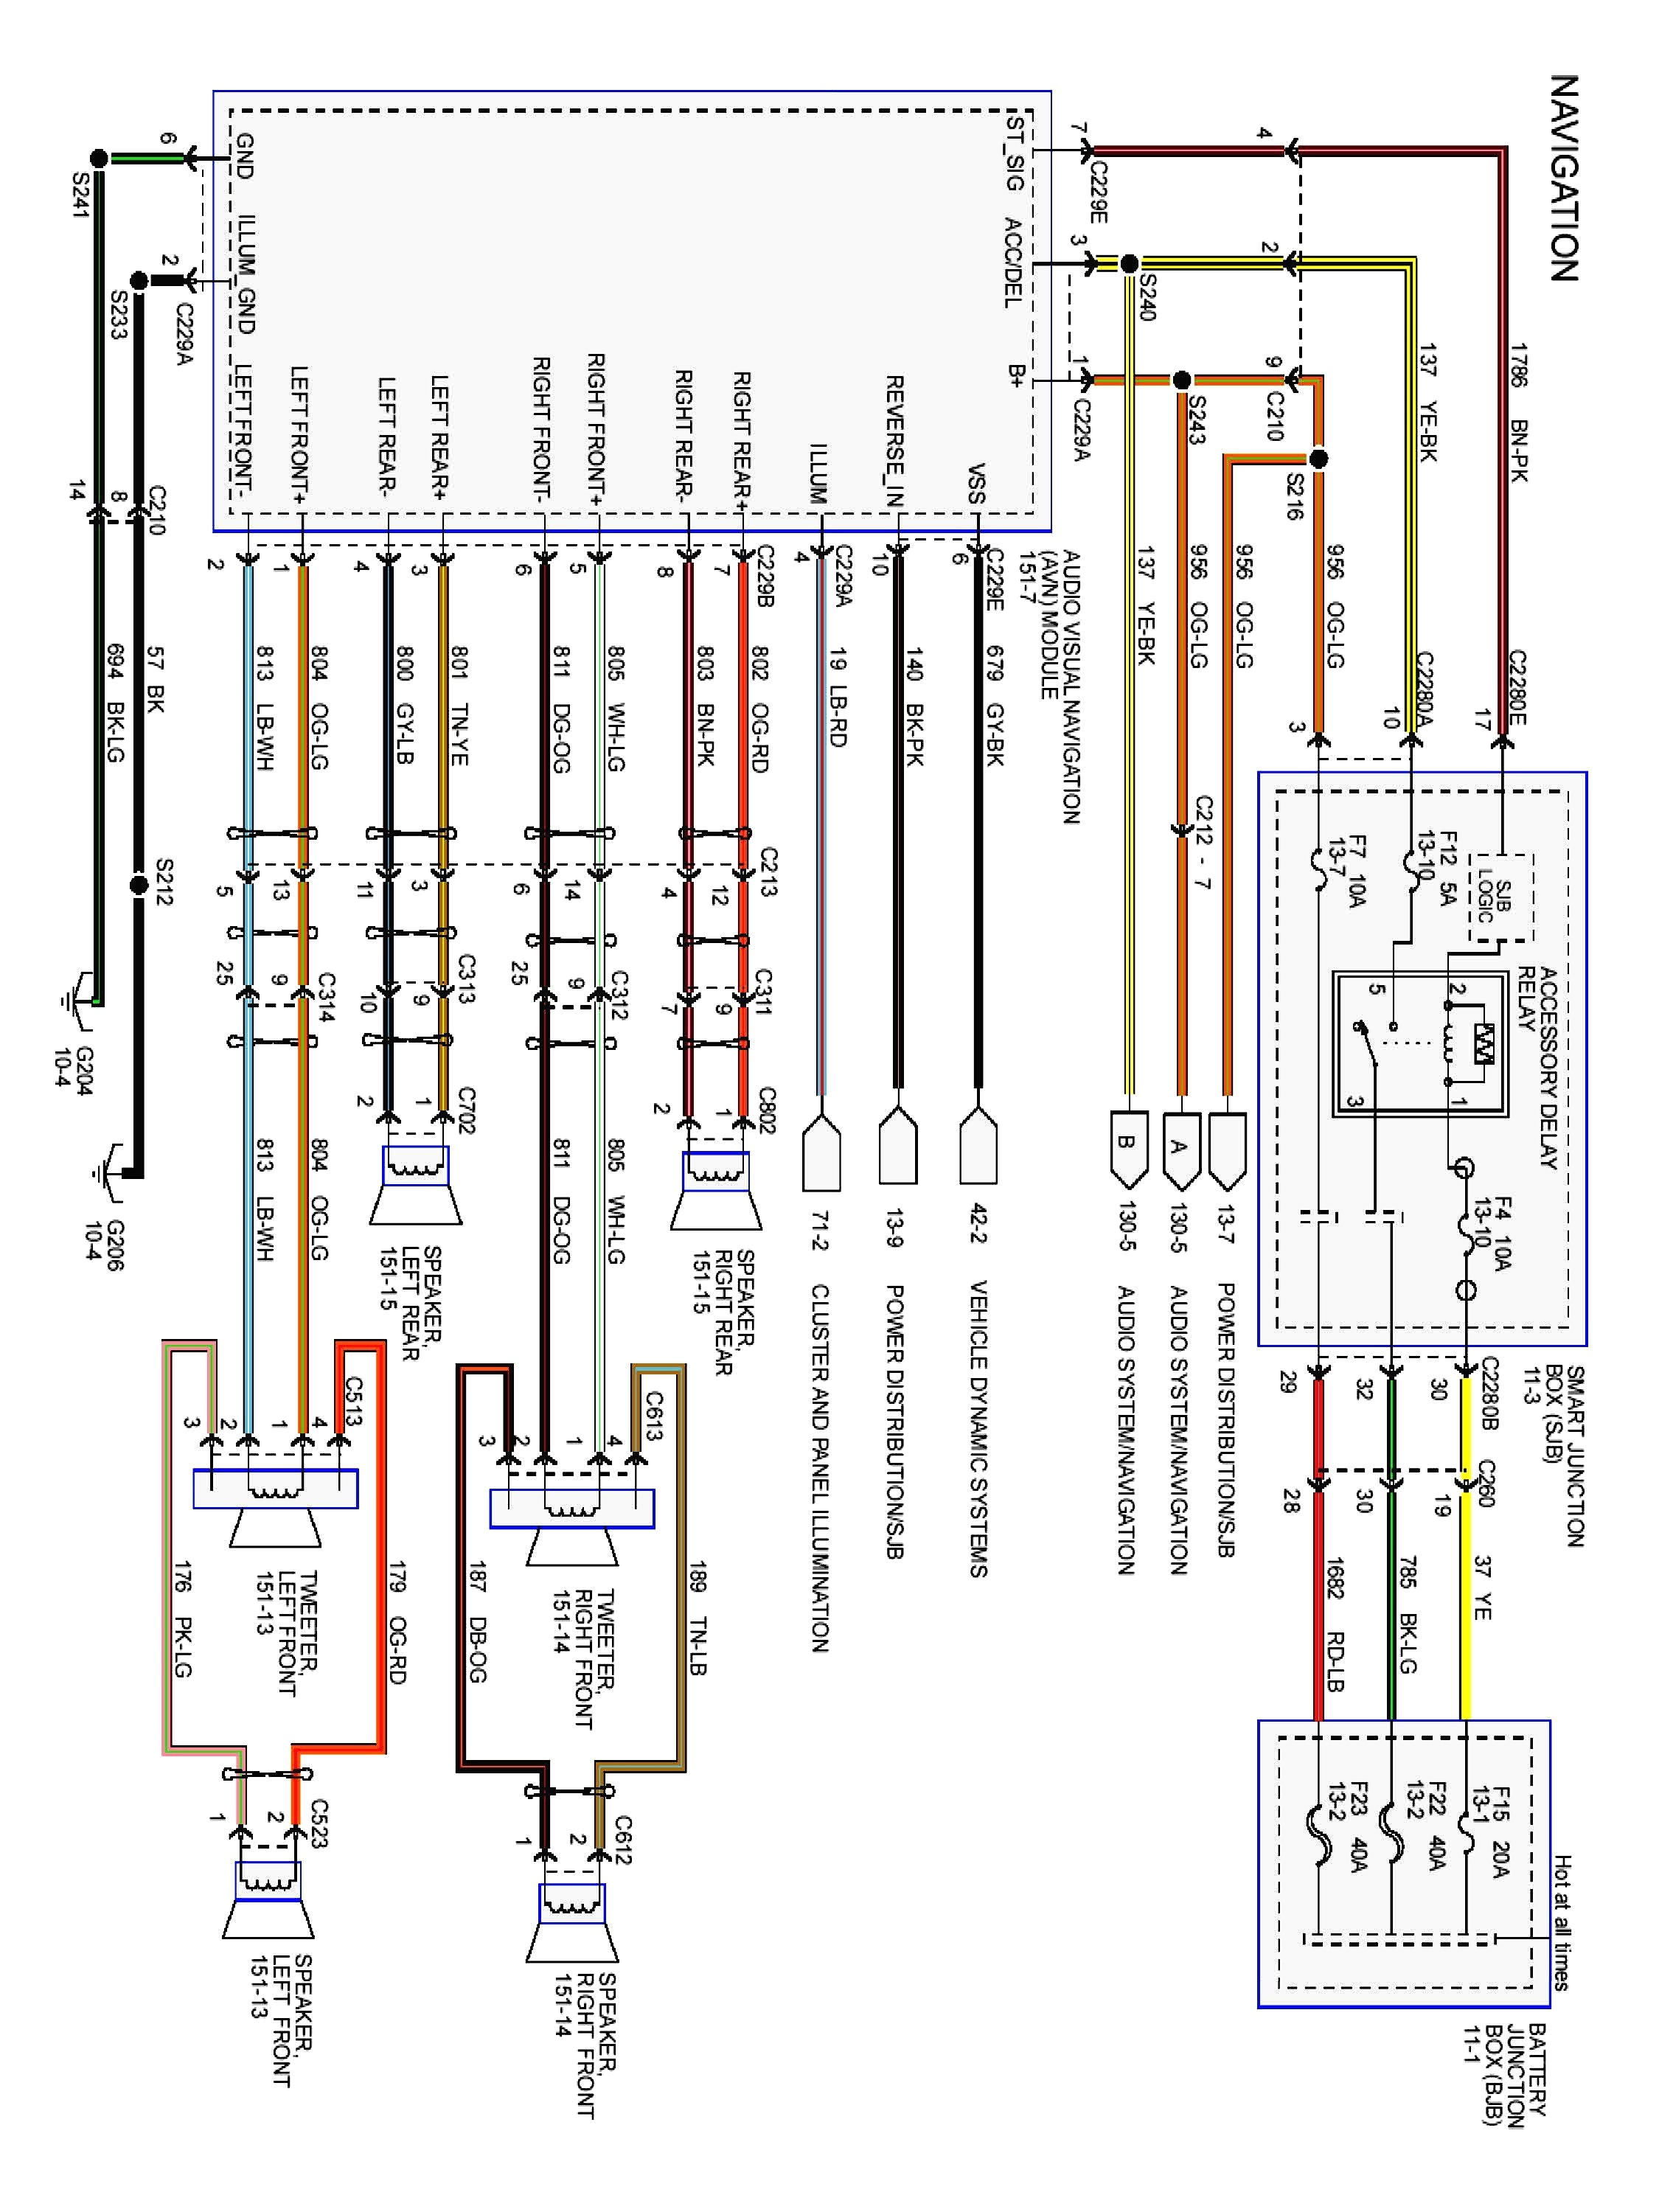 DIAGRAM] 1995 Ford F250 Xlt Radio Wiring Diagram FULL Version HD Quality Wiring  Diagram - CARRYBOYPHIL.K-DANSE.FRK-danse.fr